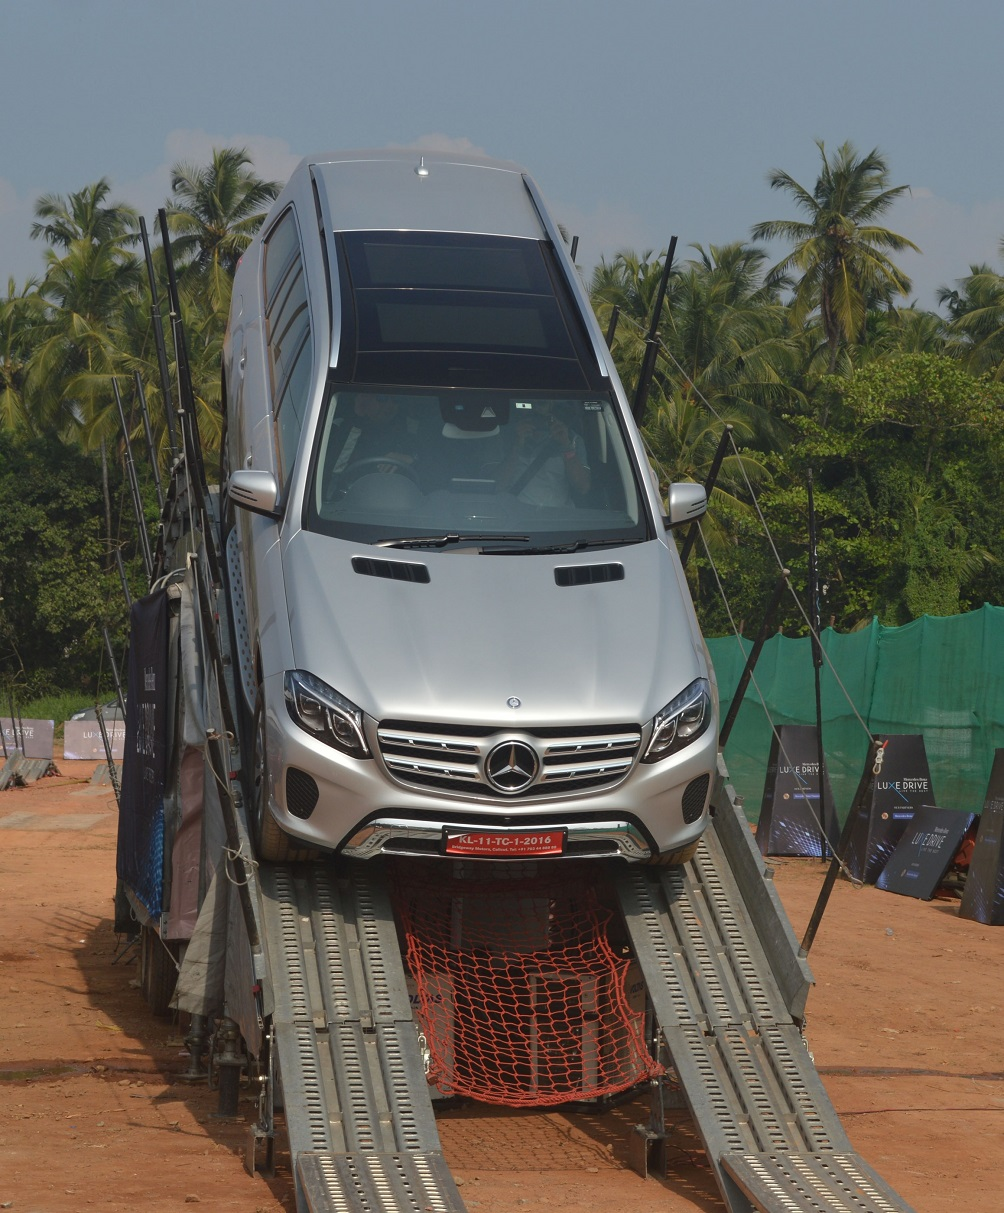 expert-drivers-showcasing-the-various-vehicle-dynamics-and-features-of-the-mercedes-benz-range-of-cars-at-luxe-drive-in-calicut-2